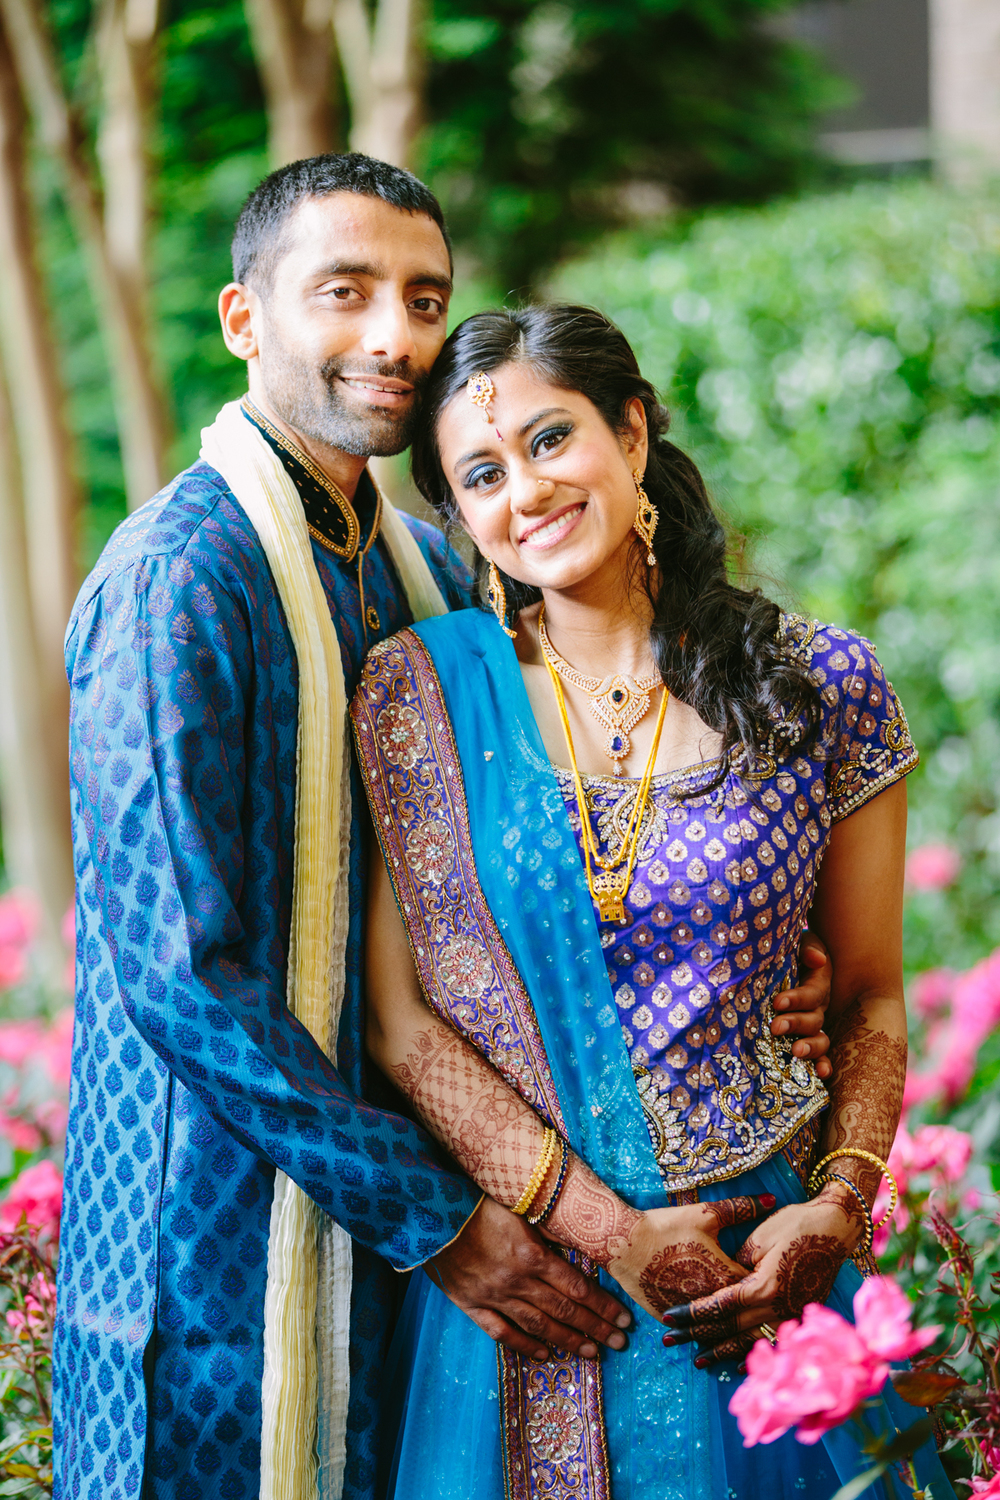 Hindu_Wedding_Washington_DC_Wedding_Photographer_P&S-140.JPG